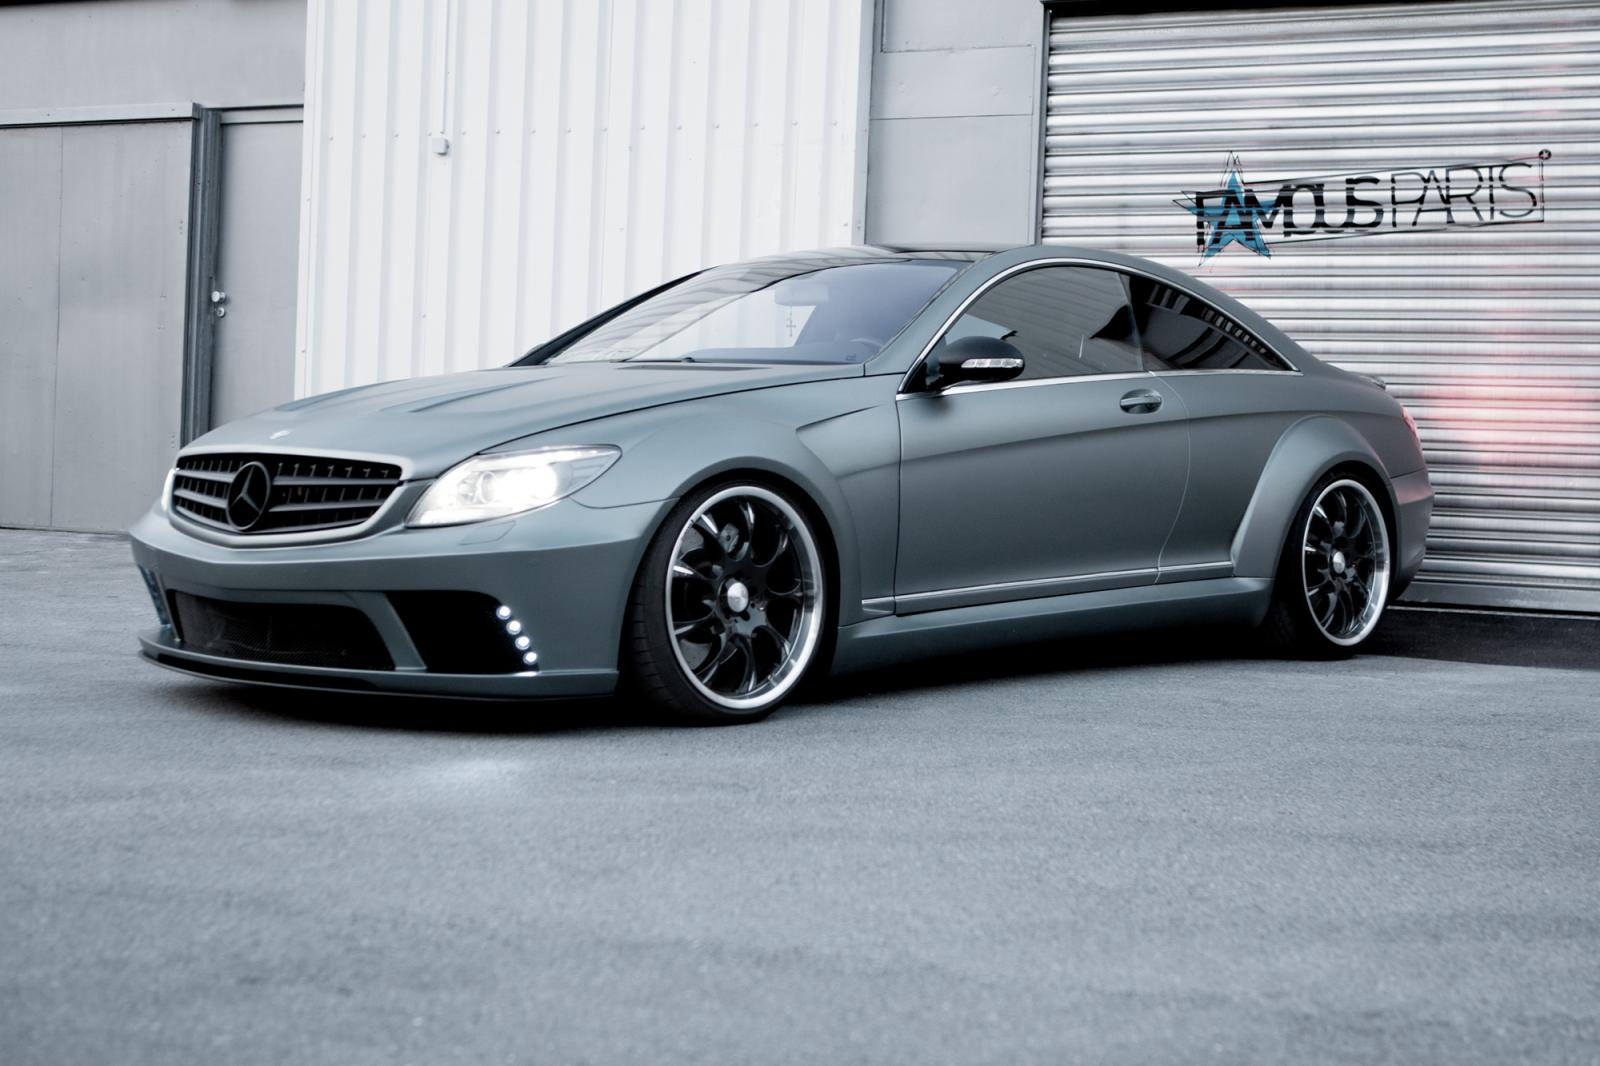 mercedes benz cl63 amg tuned by famous parts